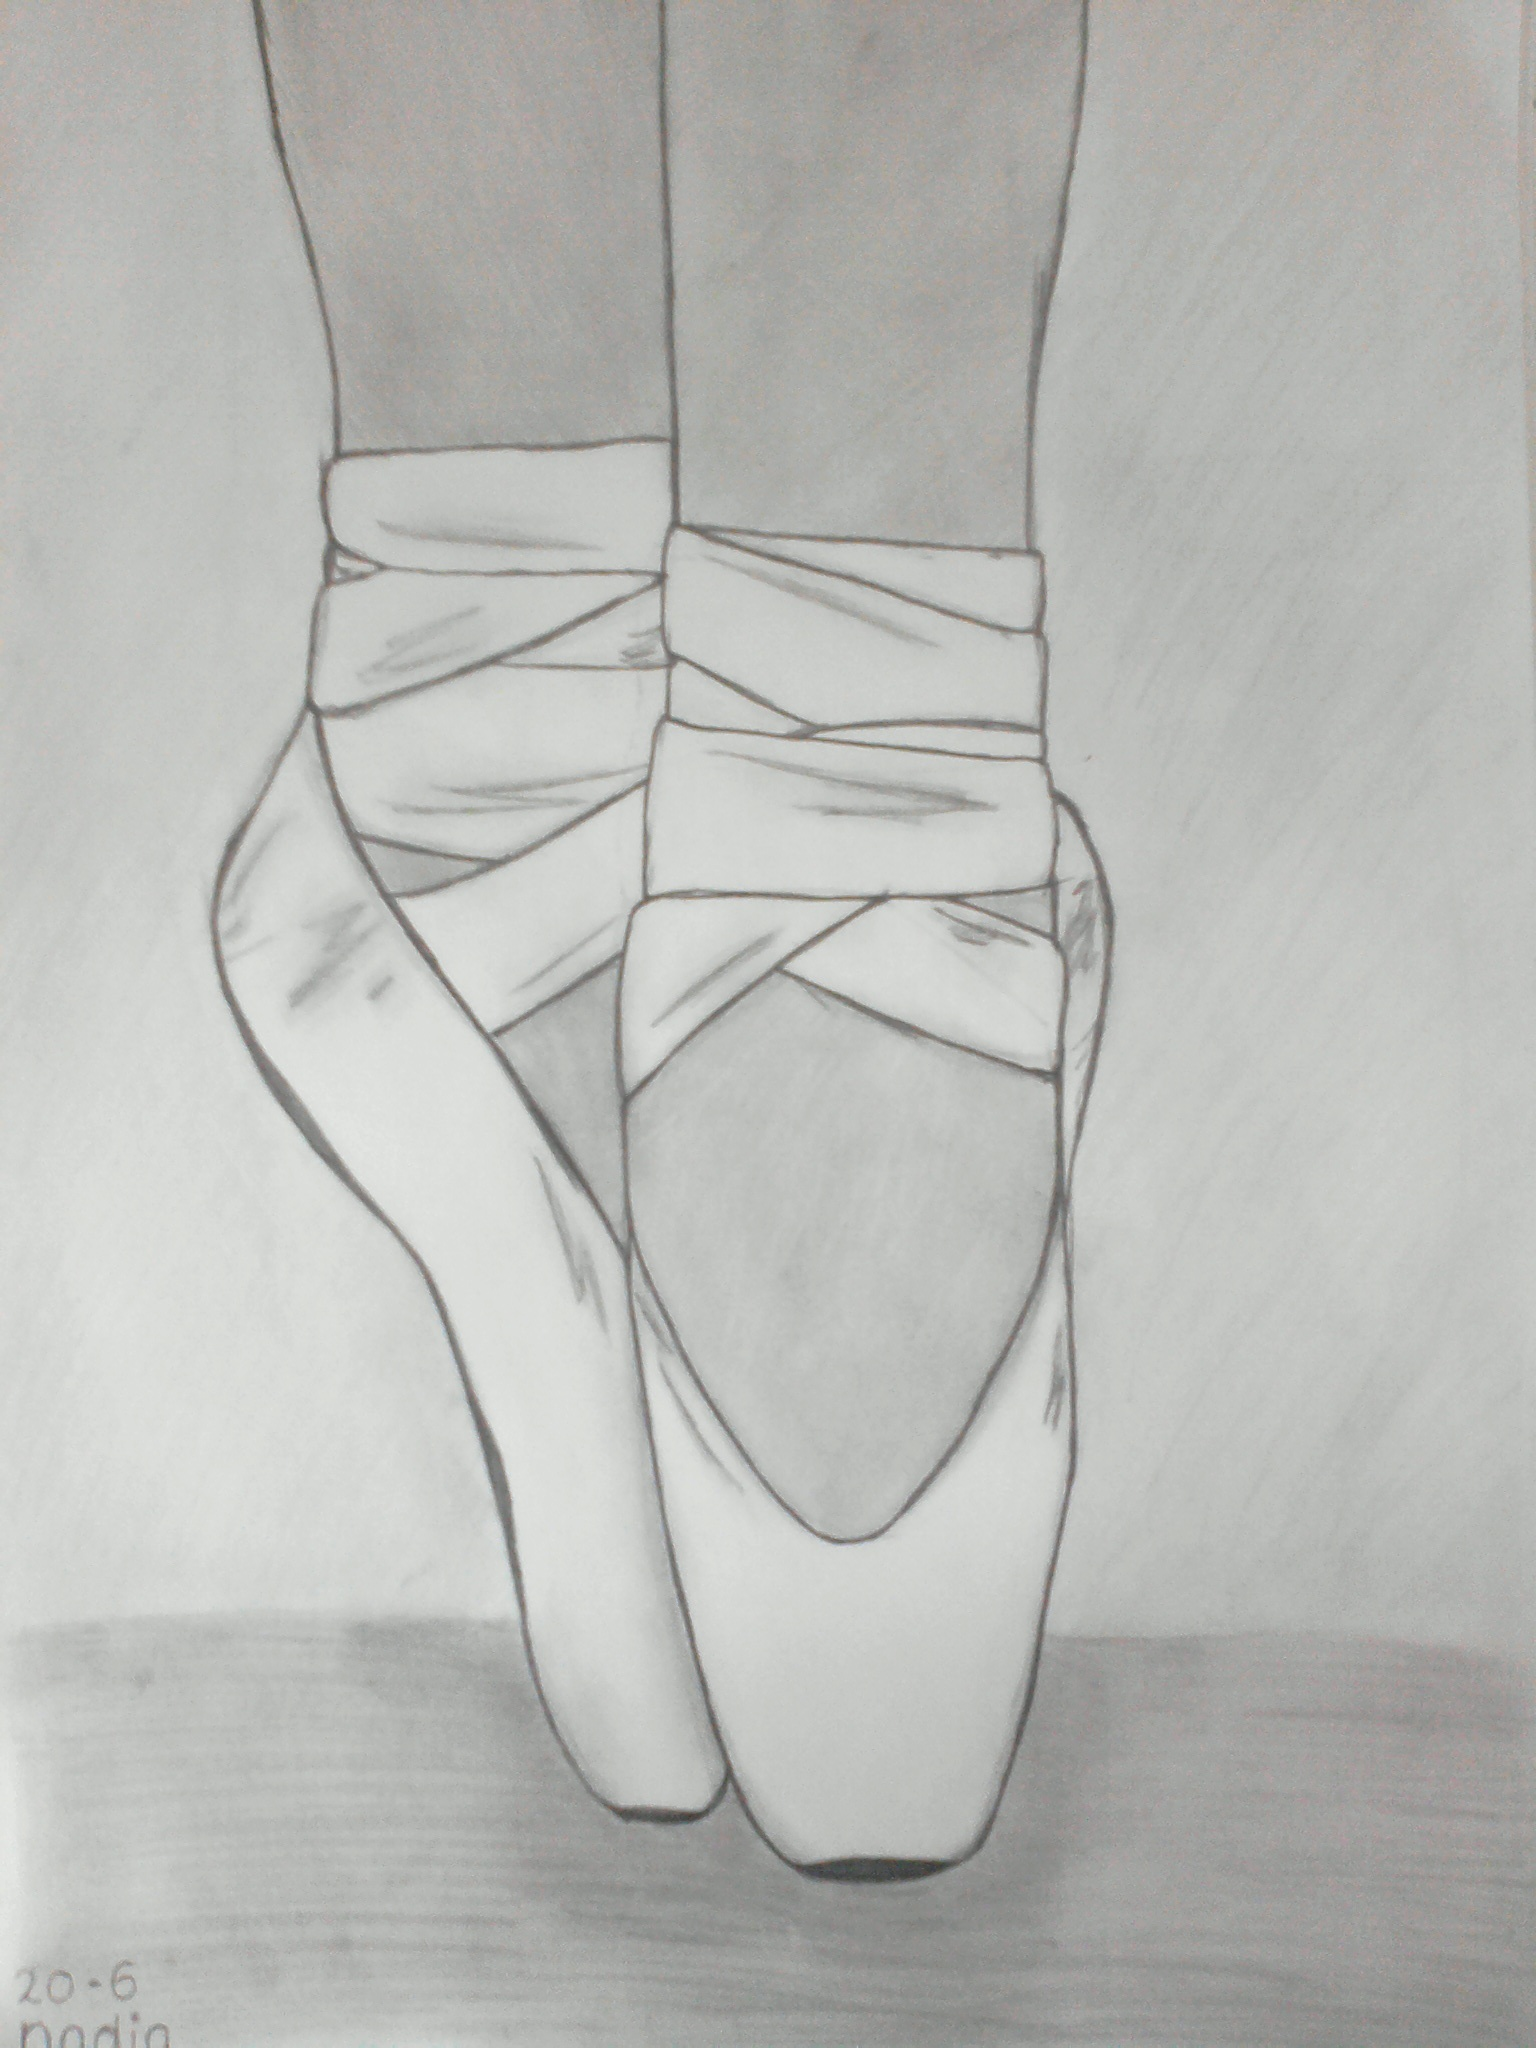 ballet shoes drawing easy - photo #29